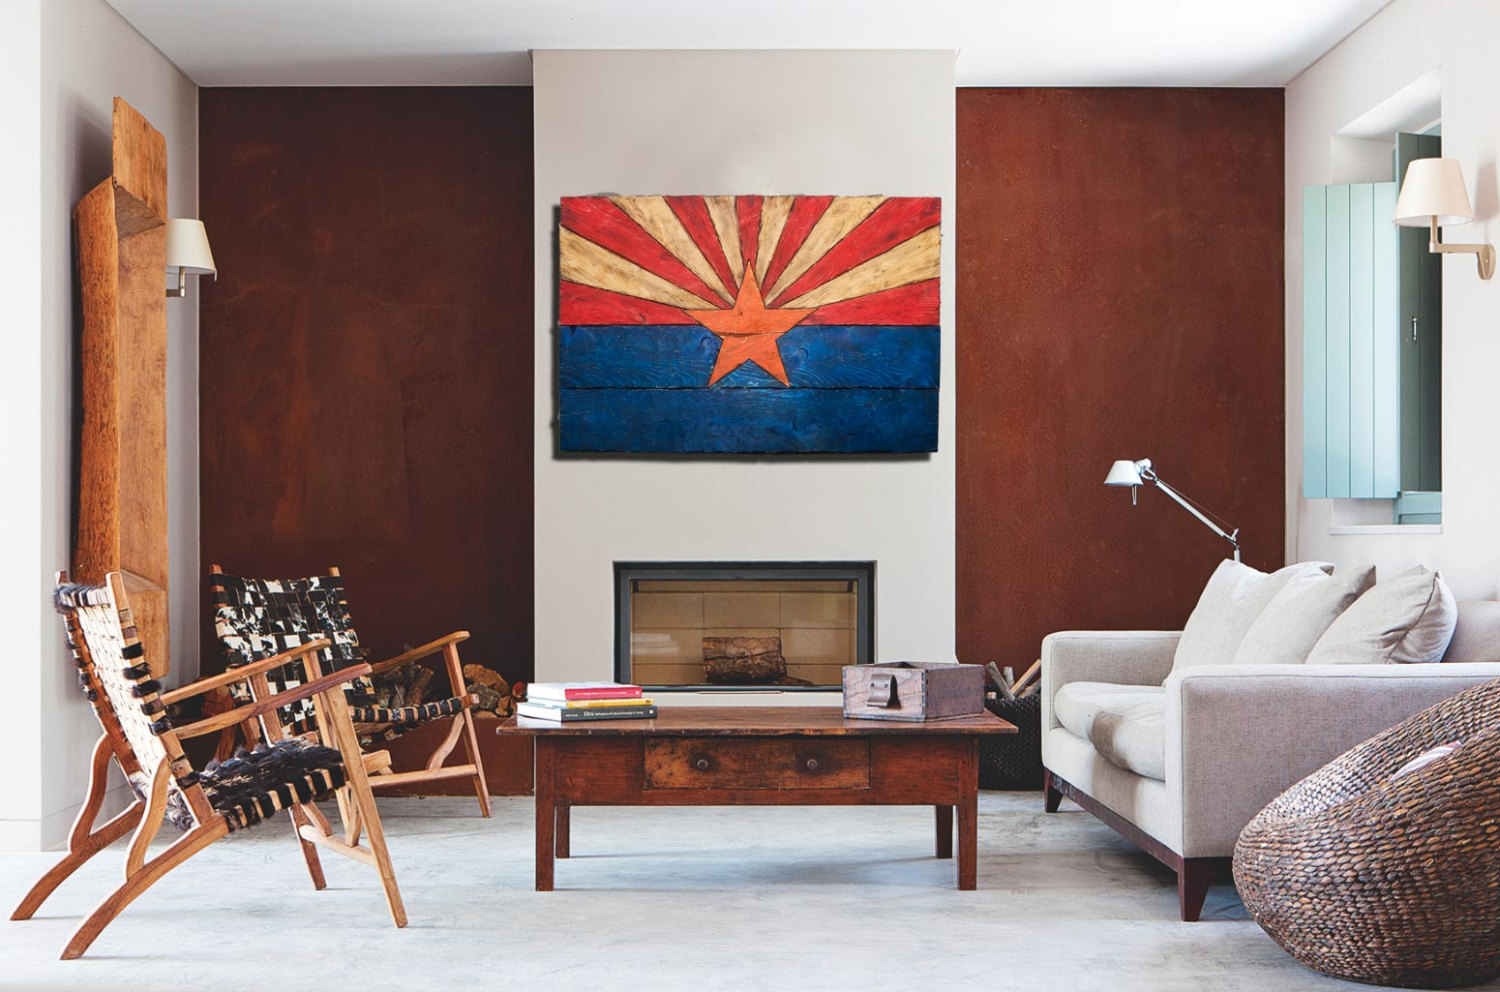 arizona flag handmade distressed painted wood vintage art distressed weathered az. Black Bedroom Furniture Sets. Home Design Ideas